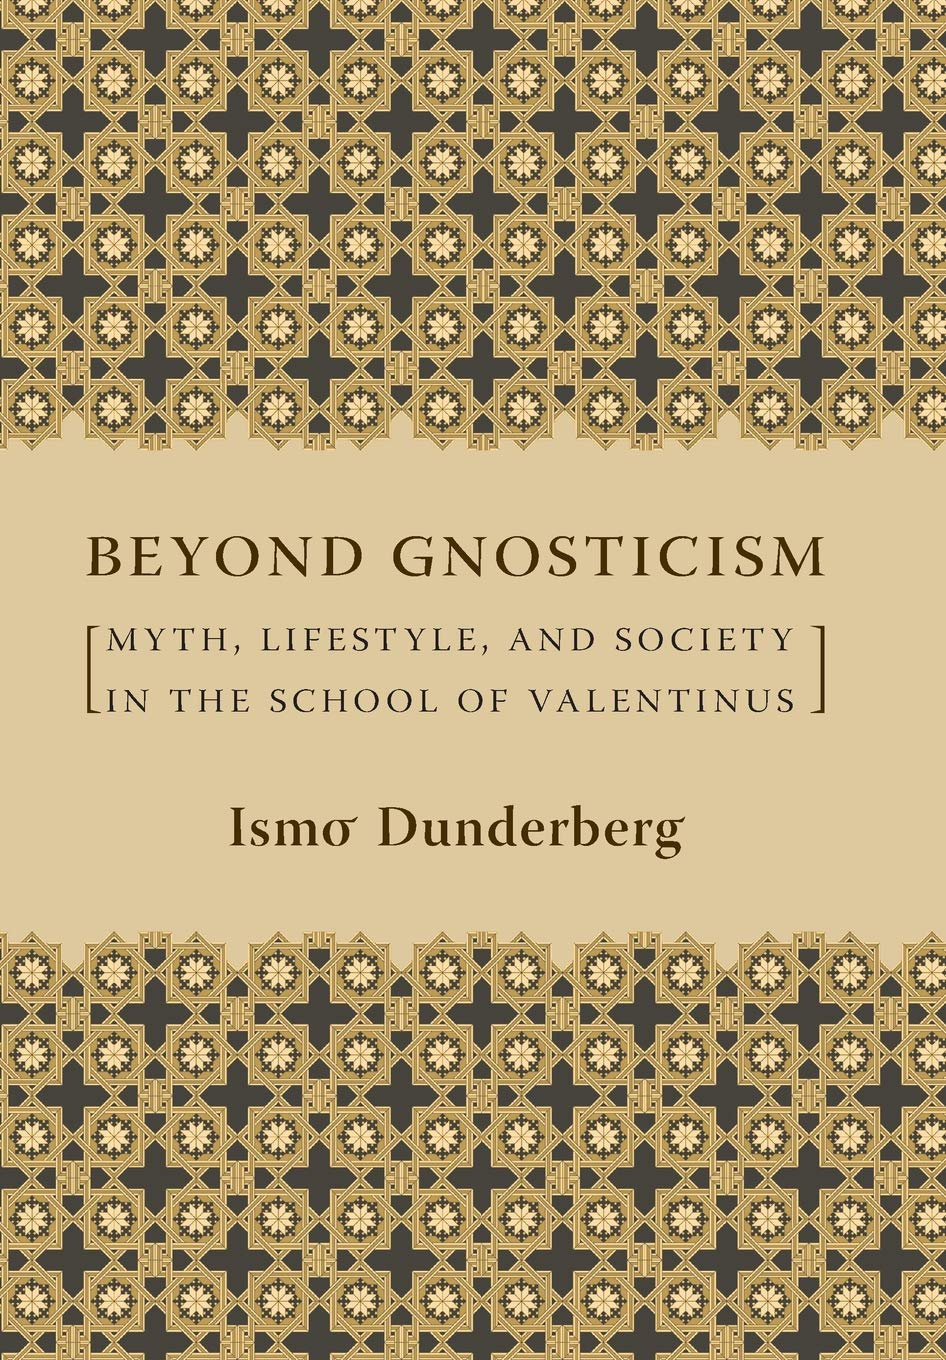 Beyond Gnosticism: Myth Lifestyle and Society in the School of Valentinus